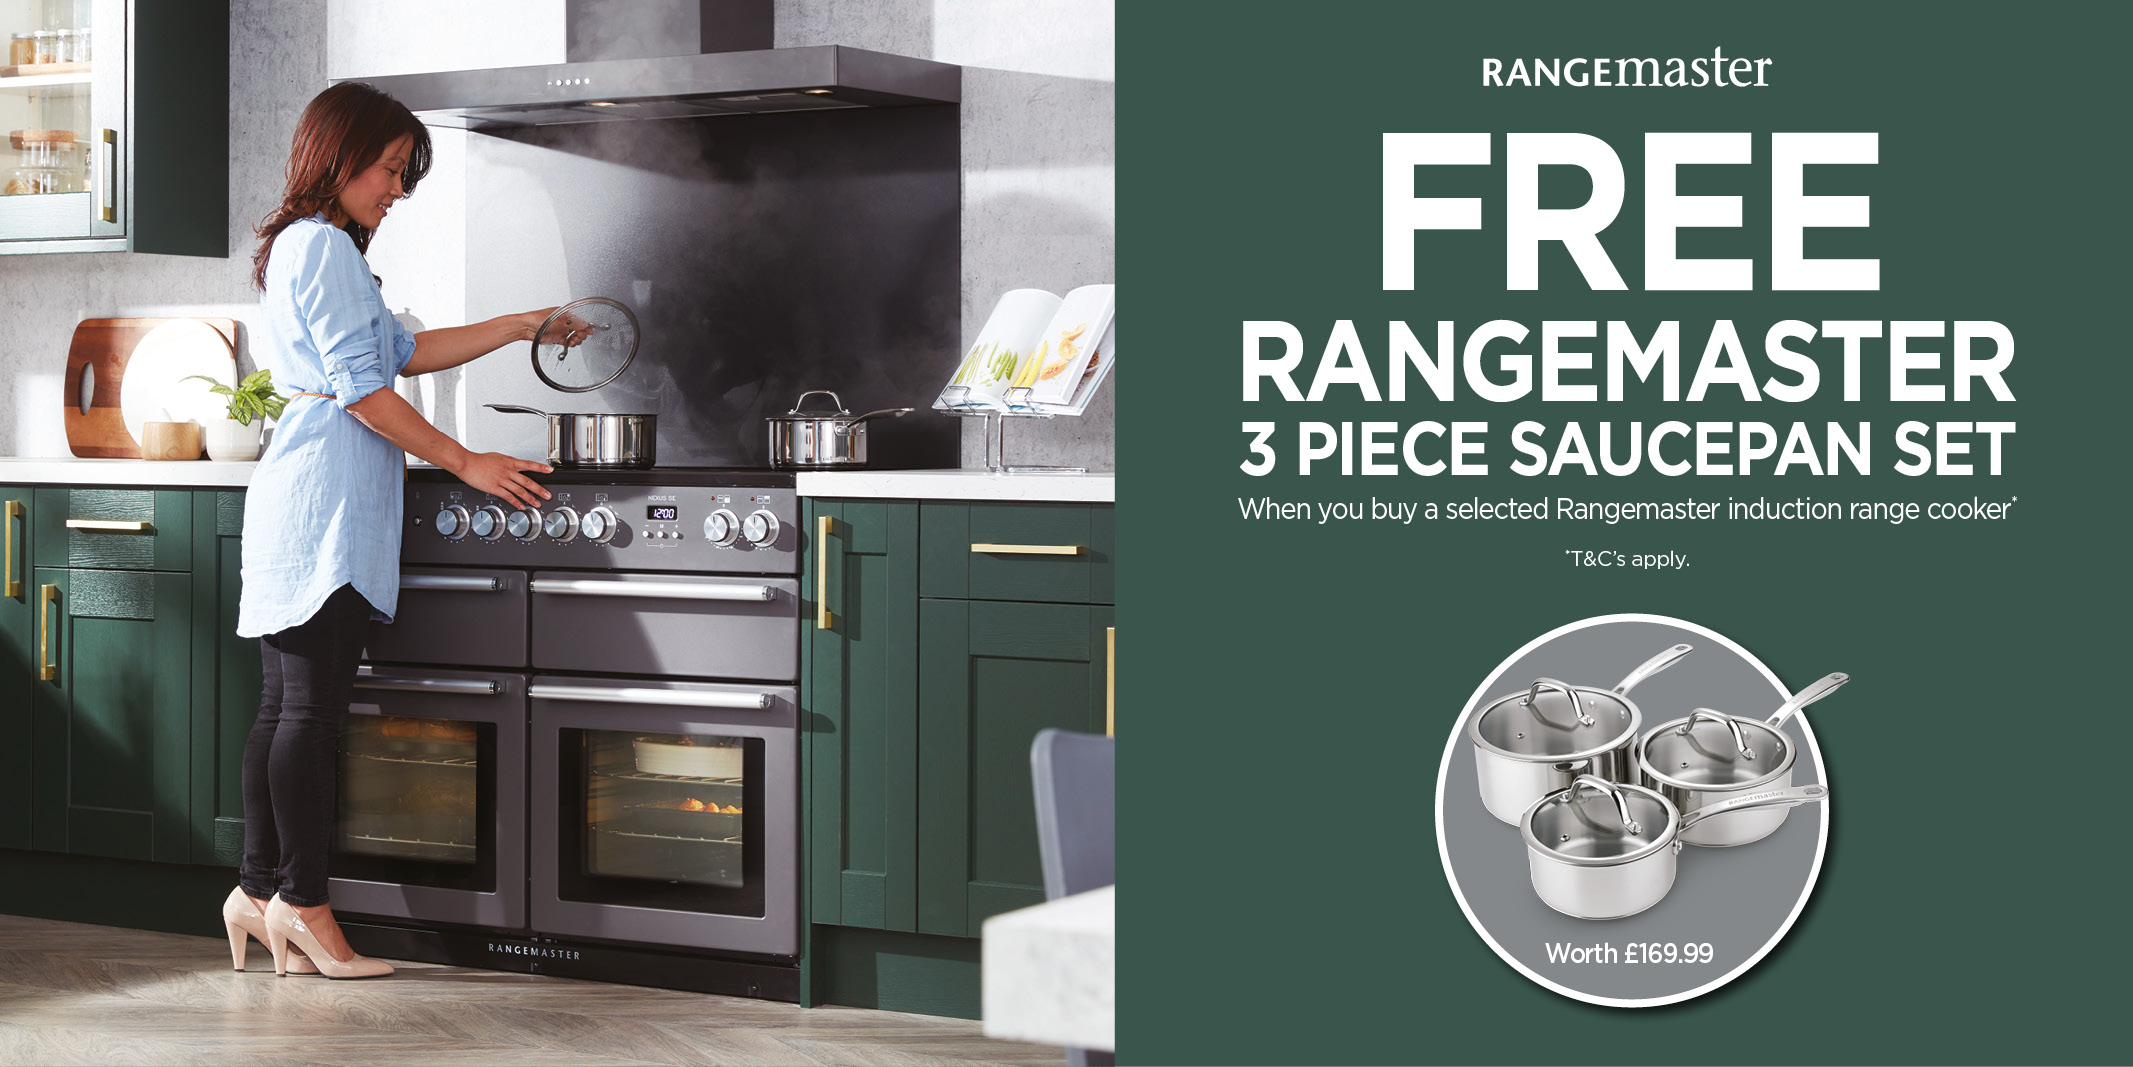 RM-Free-Saucepan-Set-Promotion-Twitter-Post